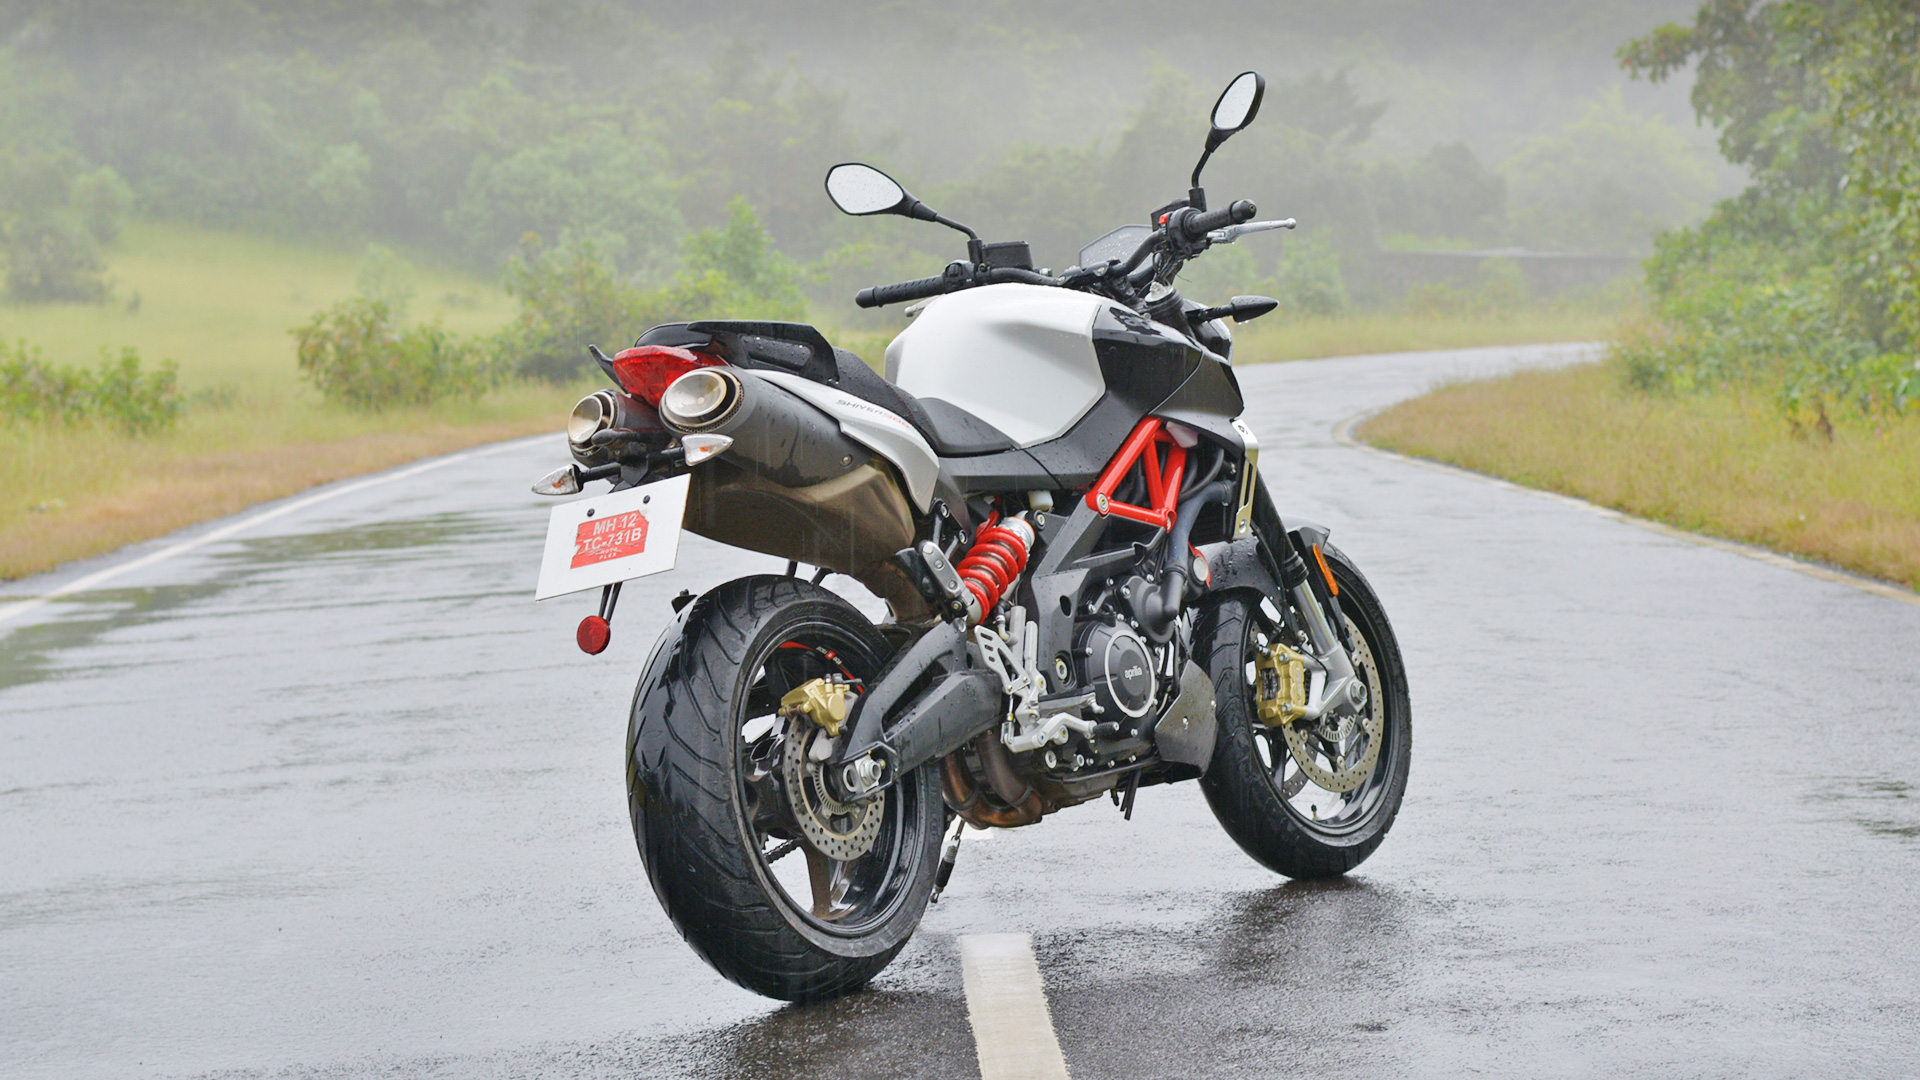 Aprilia Shiver 900 2017 Price Mileage Reviews